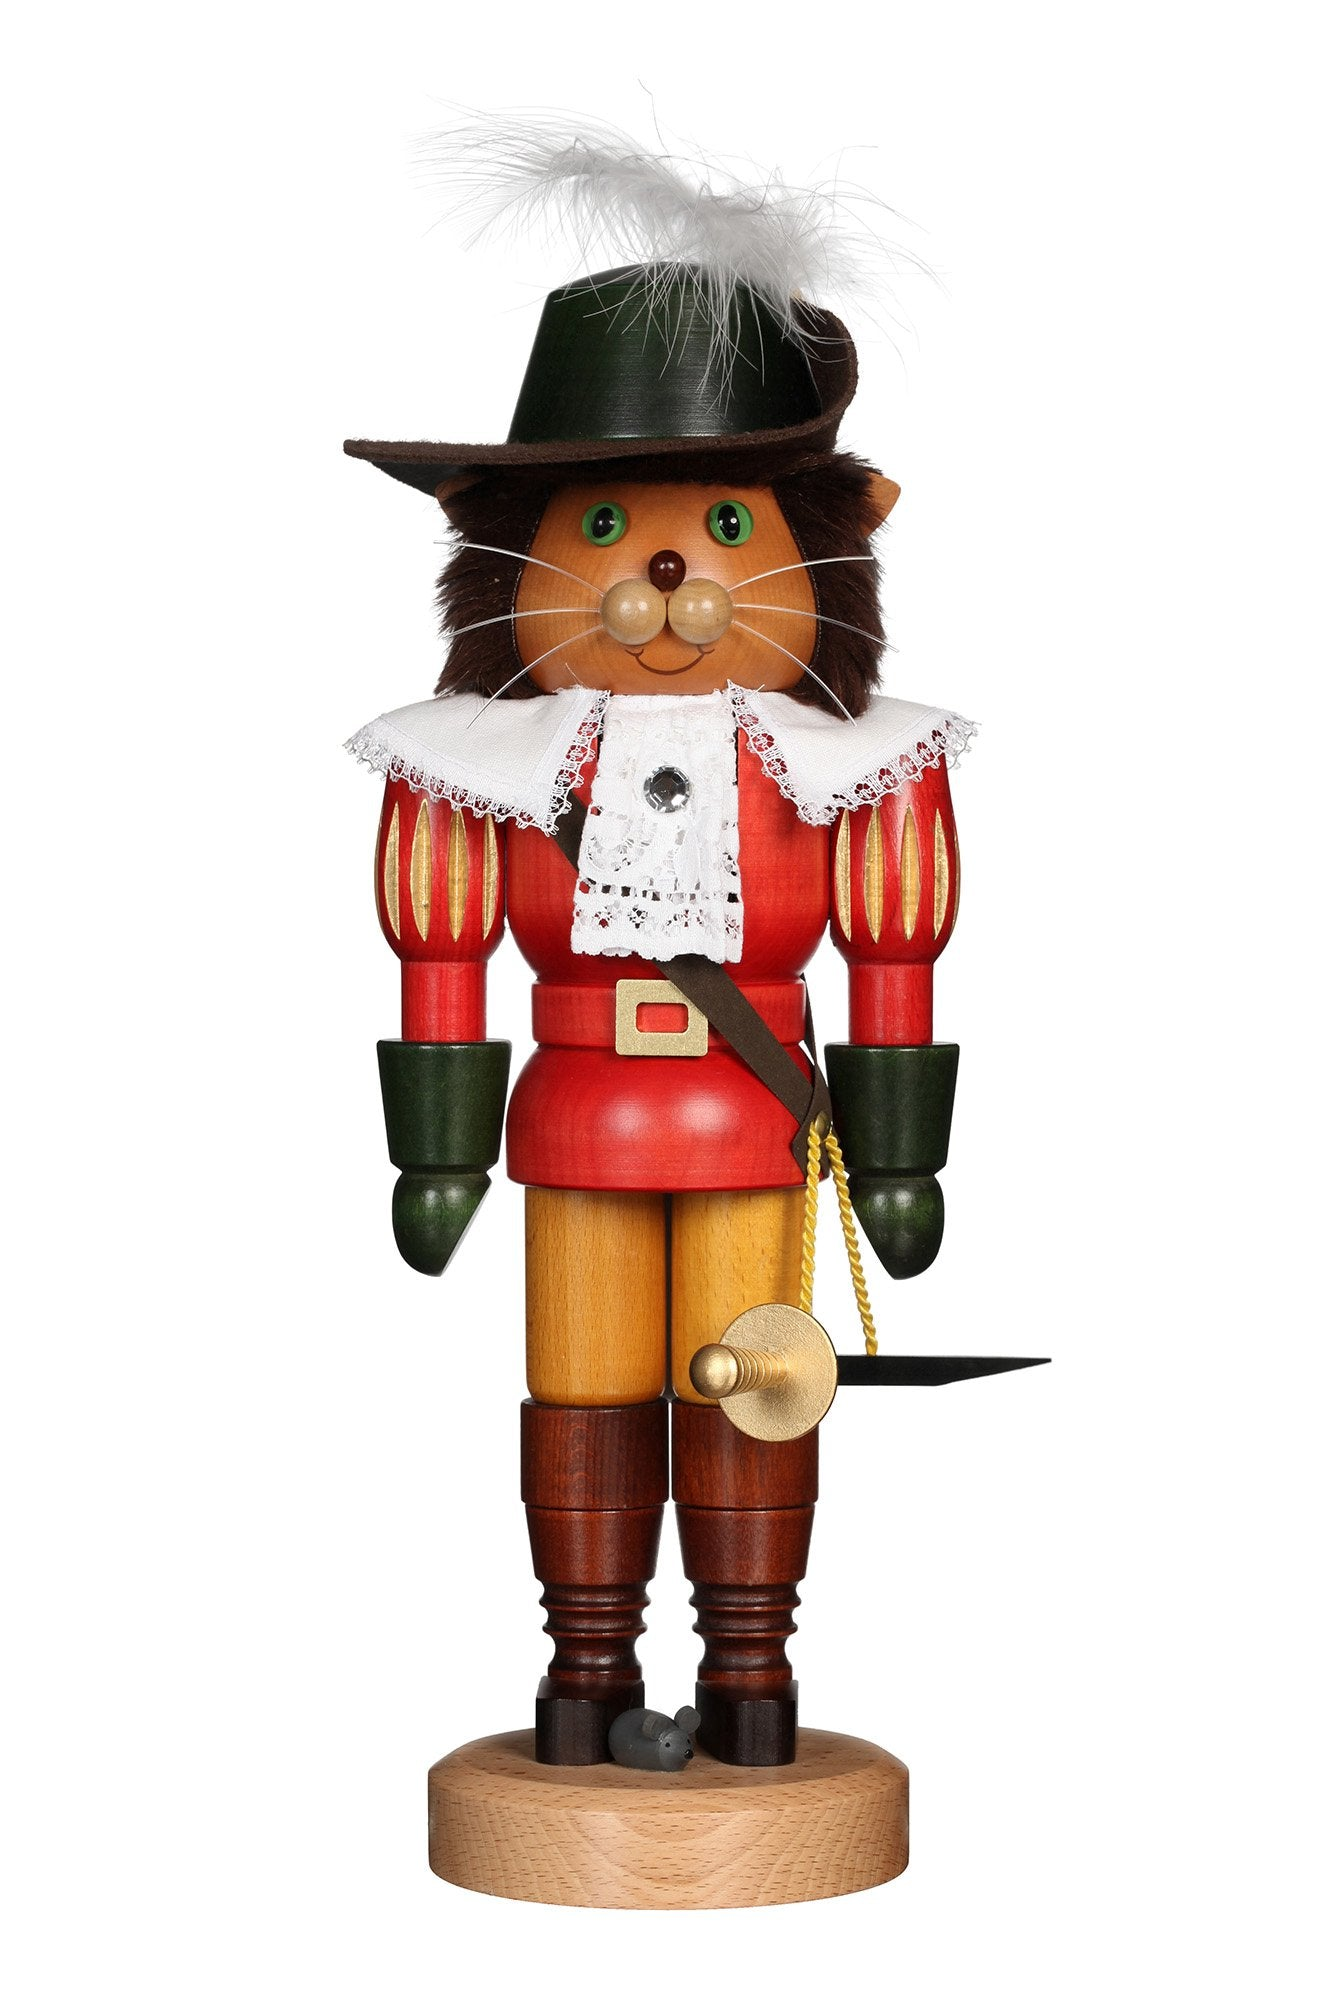 Nutcracker (Classic) - Puss in Boots with a Red Coat